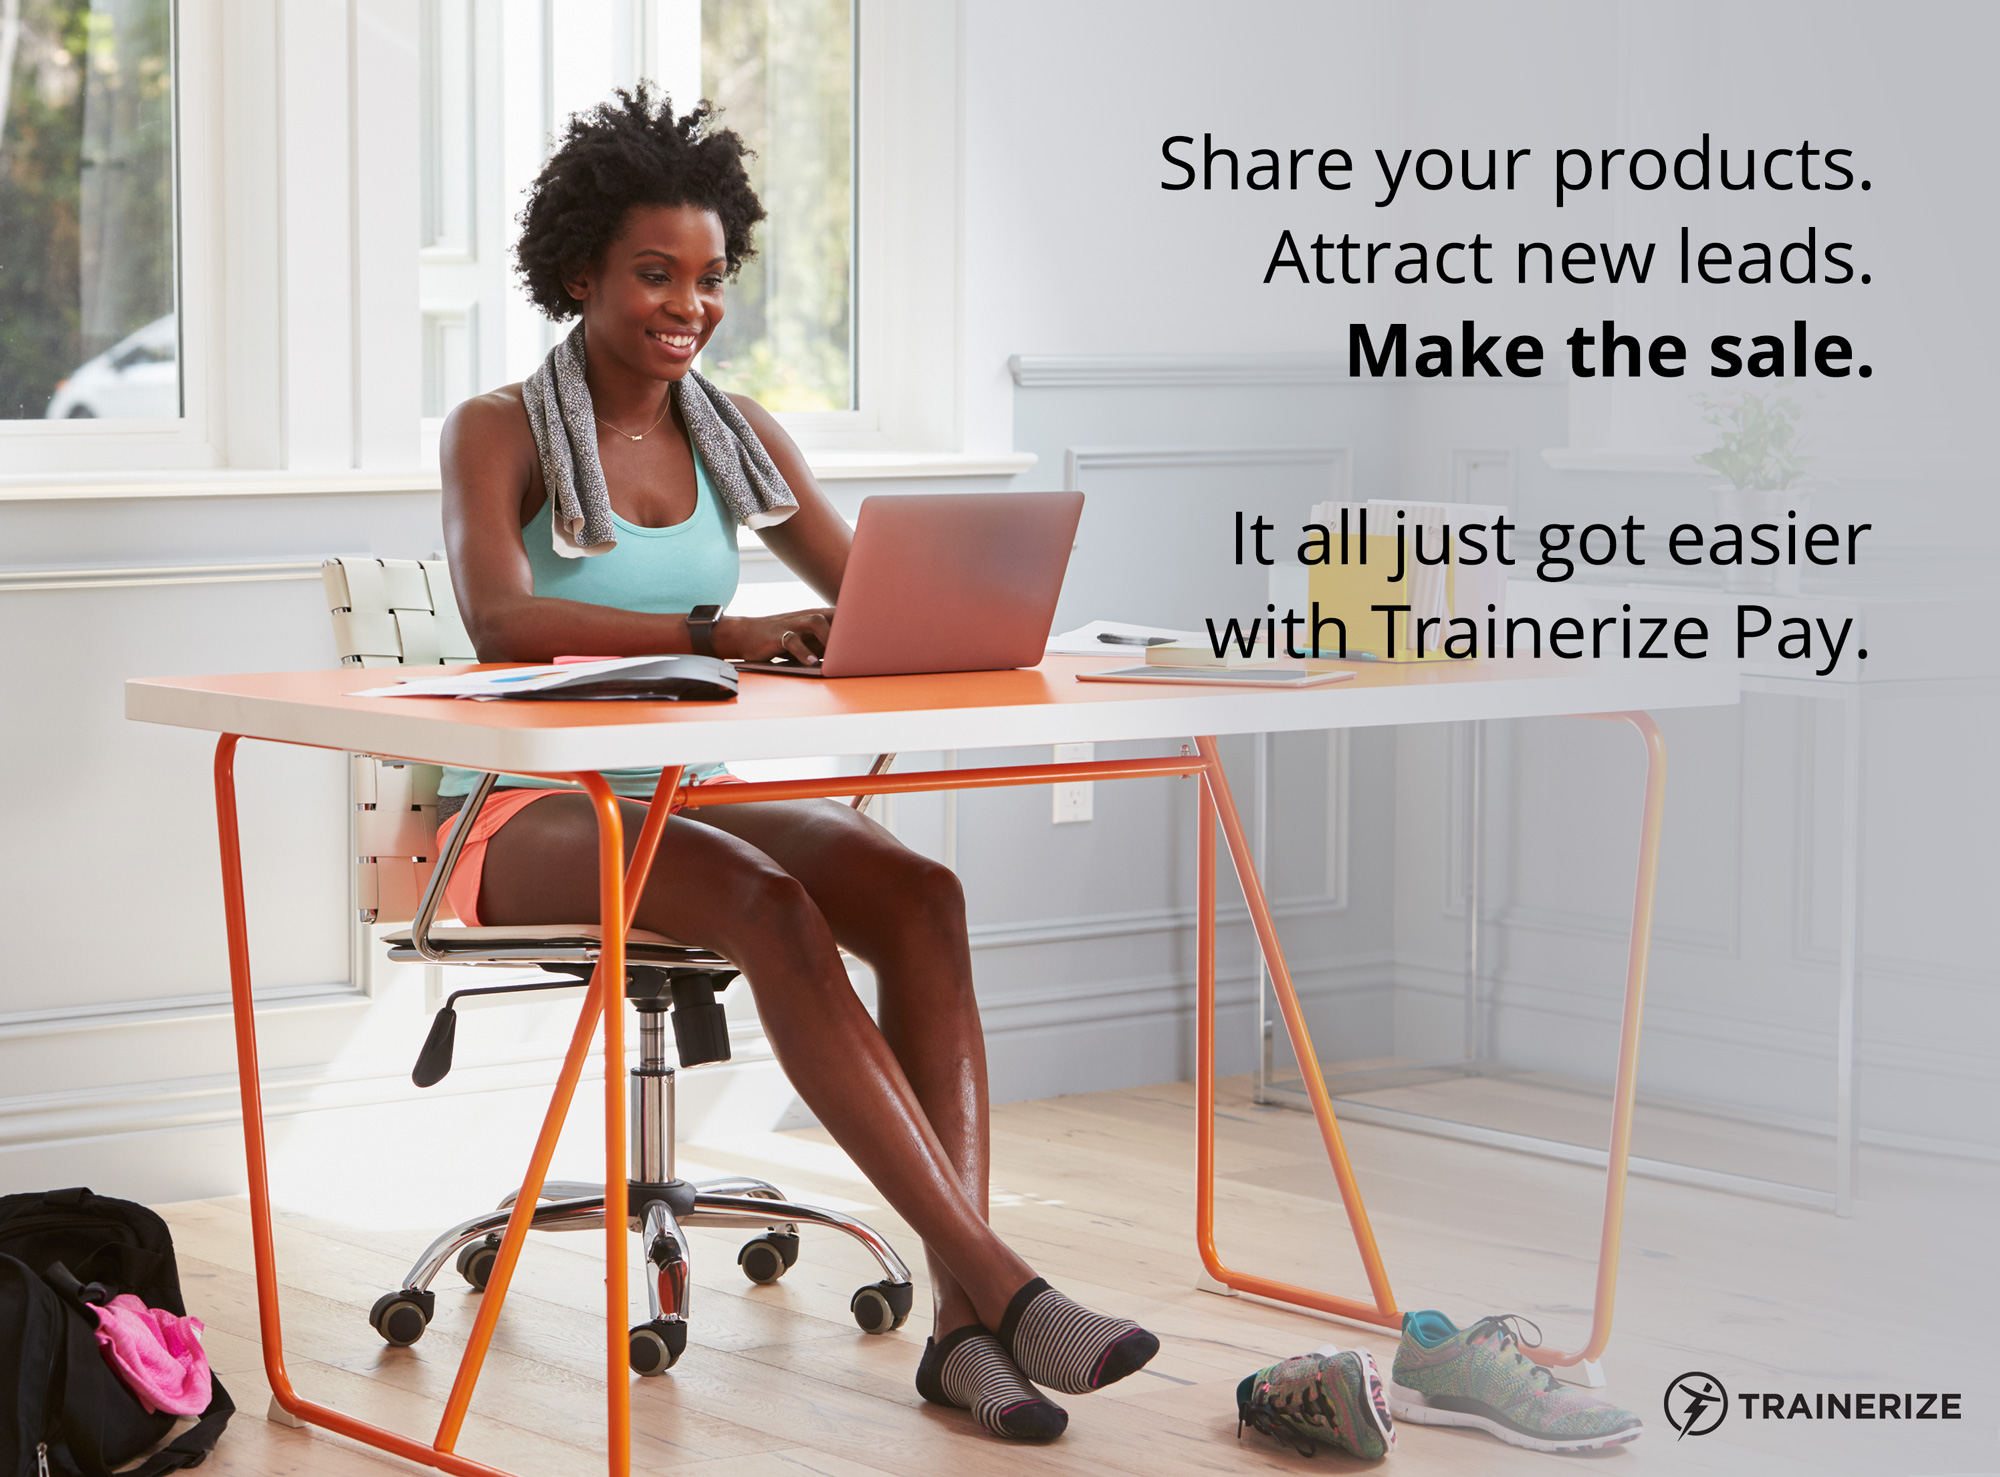 See What's New in Trainerize Pay and Learn How to Make The Sale